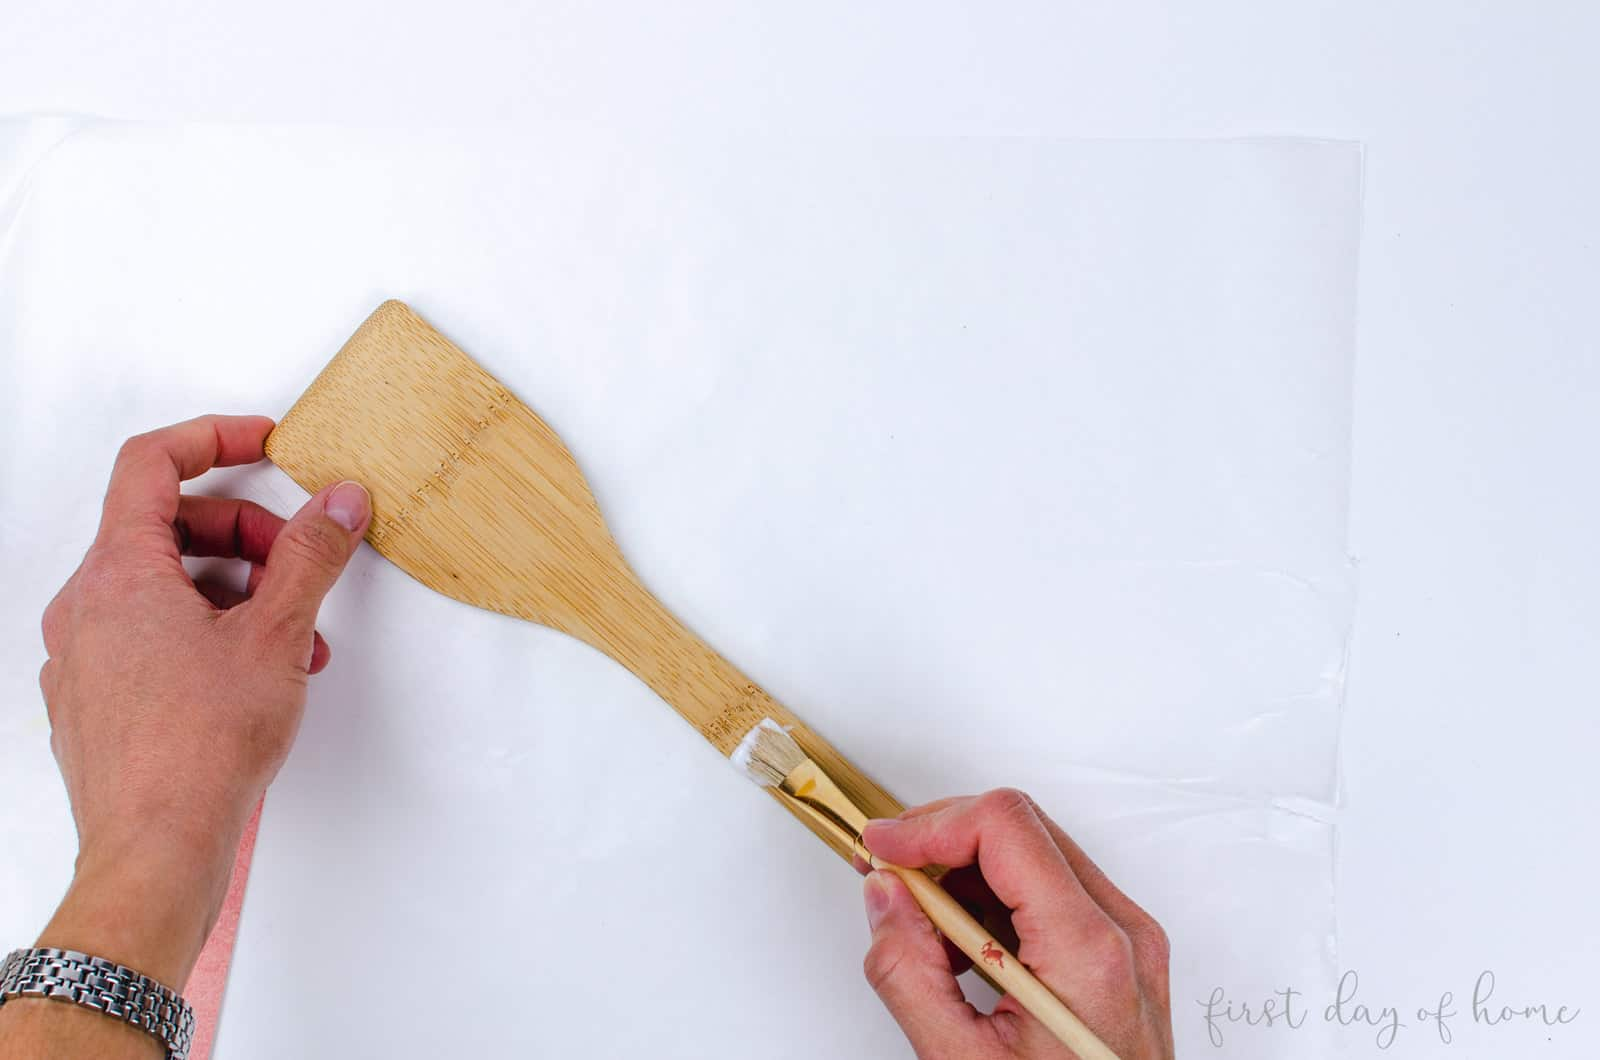 Applying mod podge to make decoupage wooden spoon